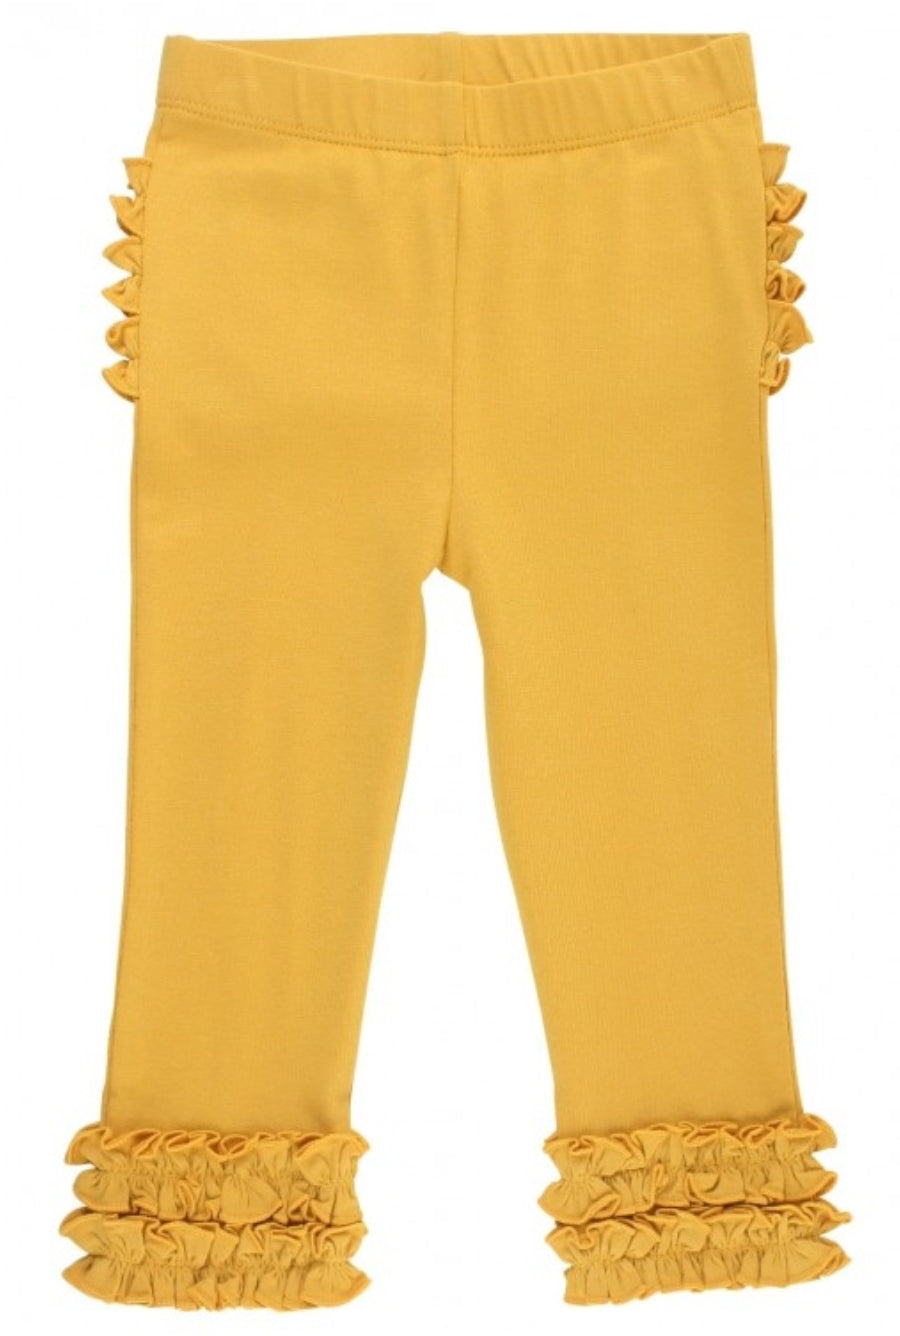 Ruffle Butts Golden Yellow Ruffle Leggings